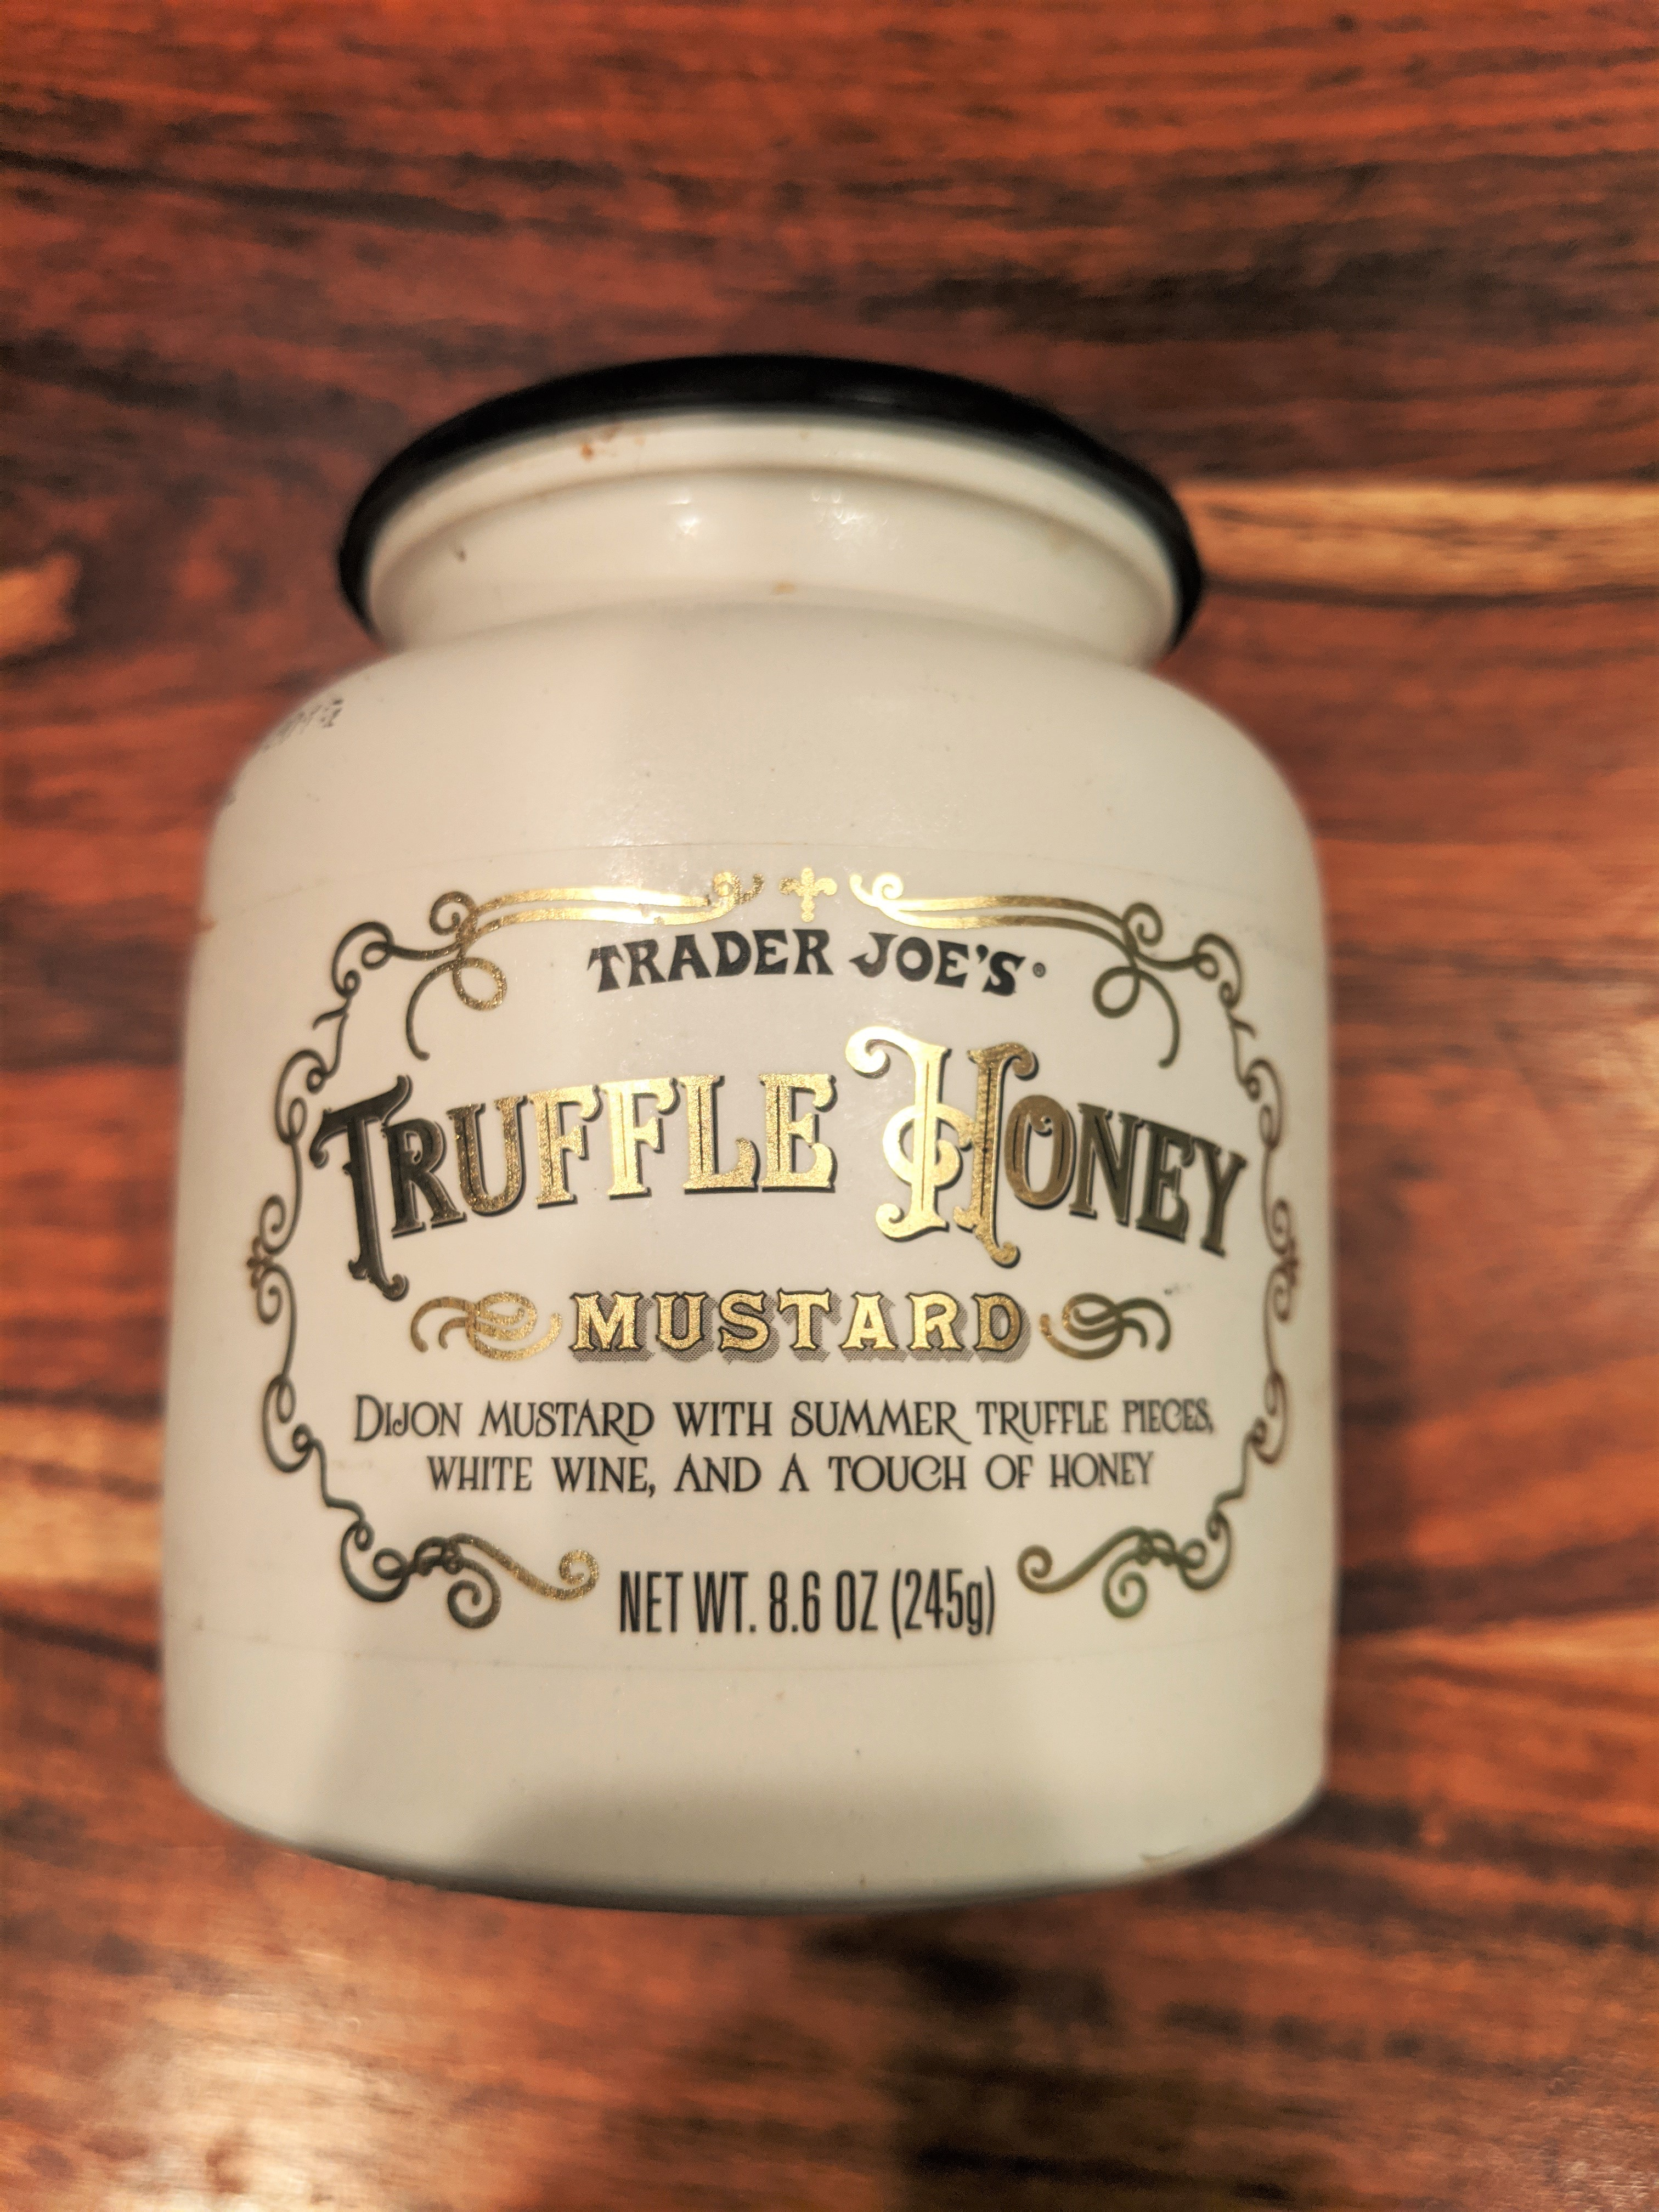 Truffle Honey Mustard from Trader Joe's